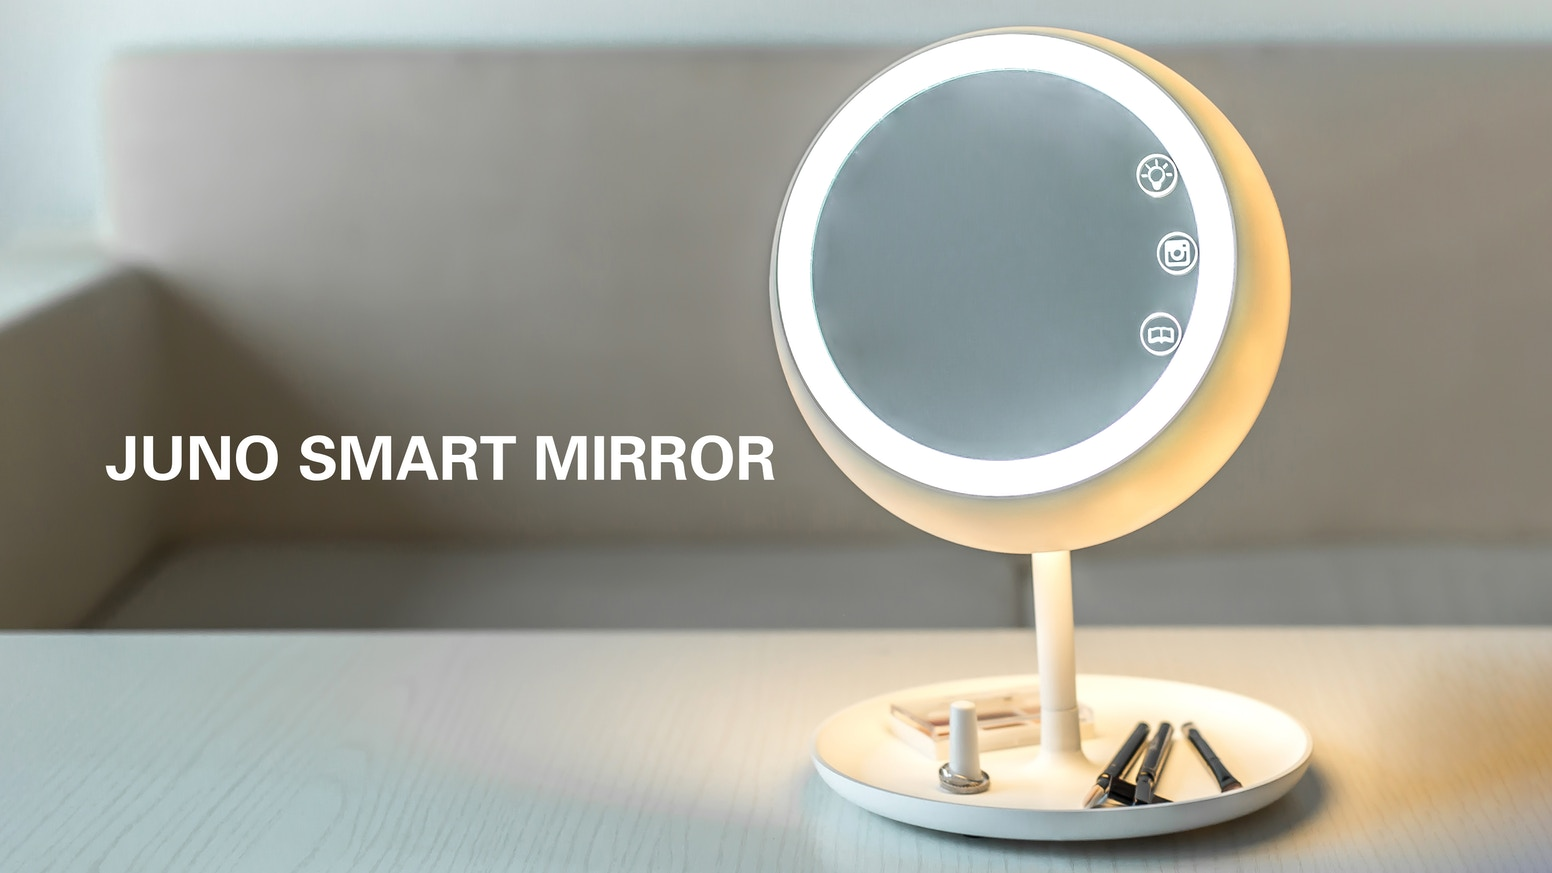 Junothe Smartest Makeup Mirror Ever By Team Juno Kickstarter Power Saver Circuit Diagram Jumbo Intelligent Your Morning Make Up Just Got Easier The First With Auto